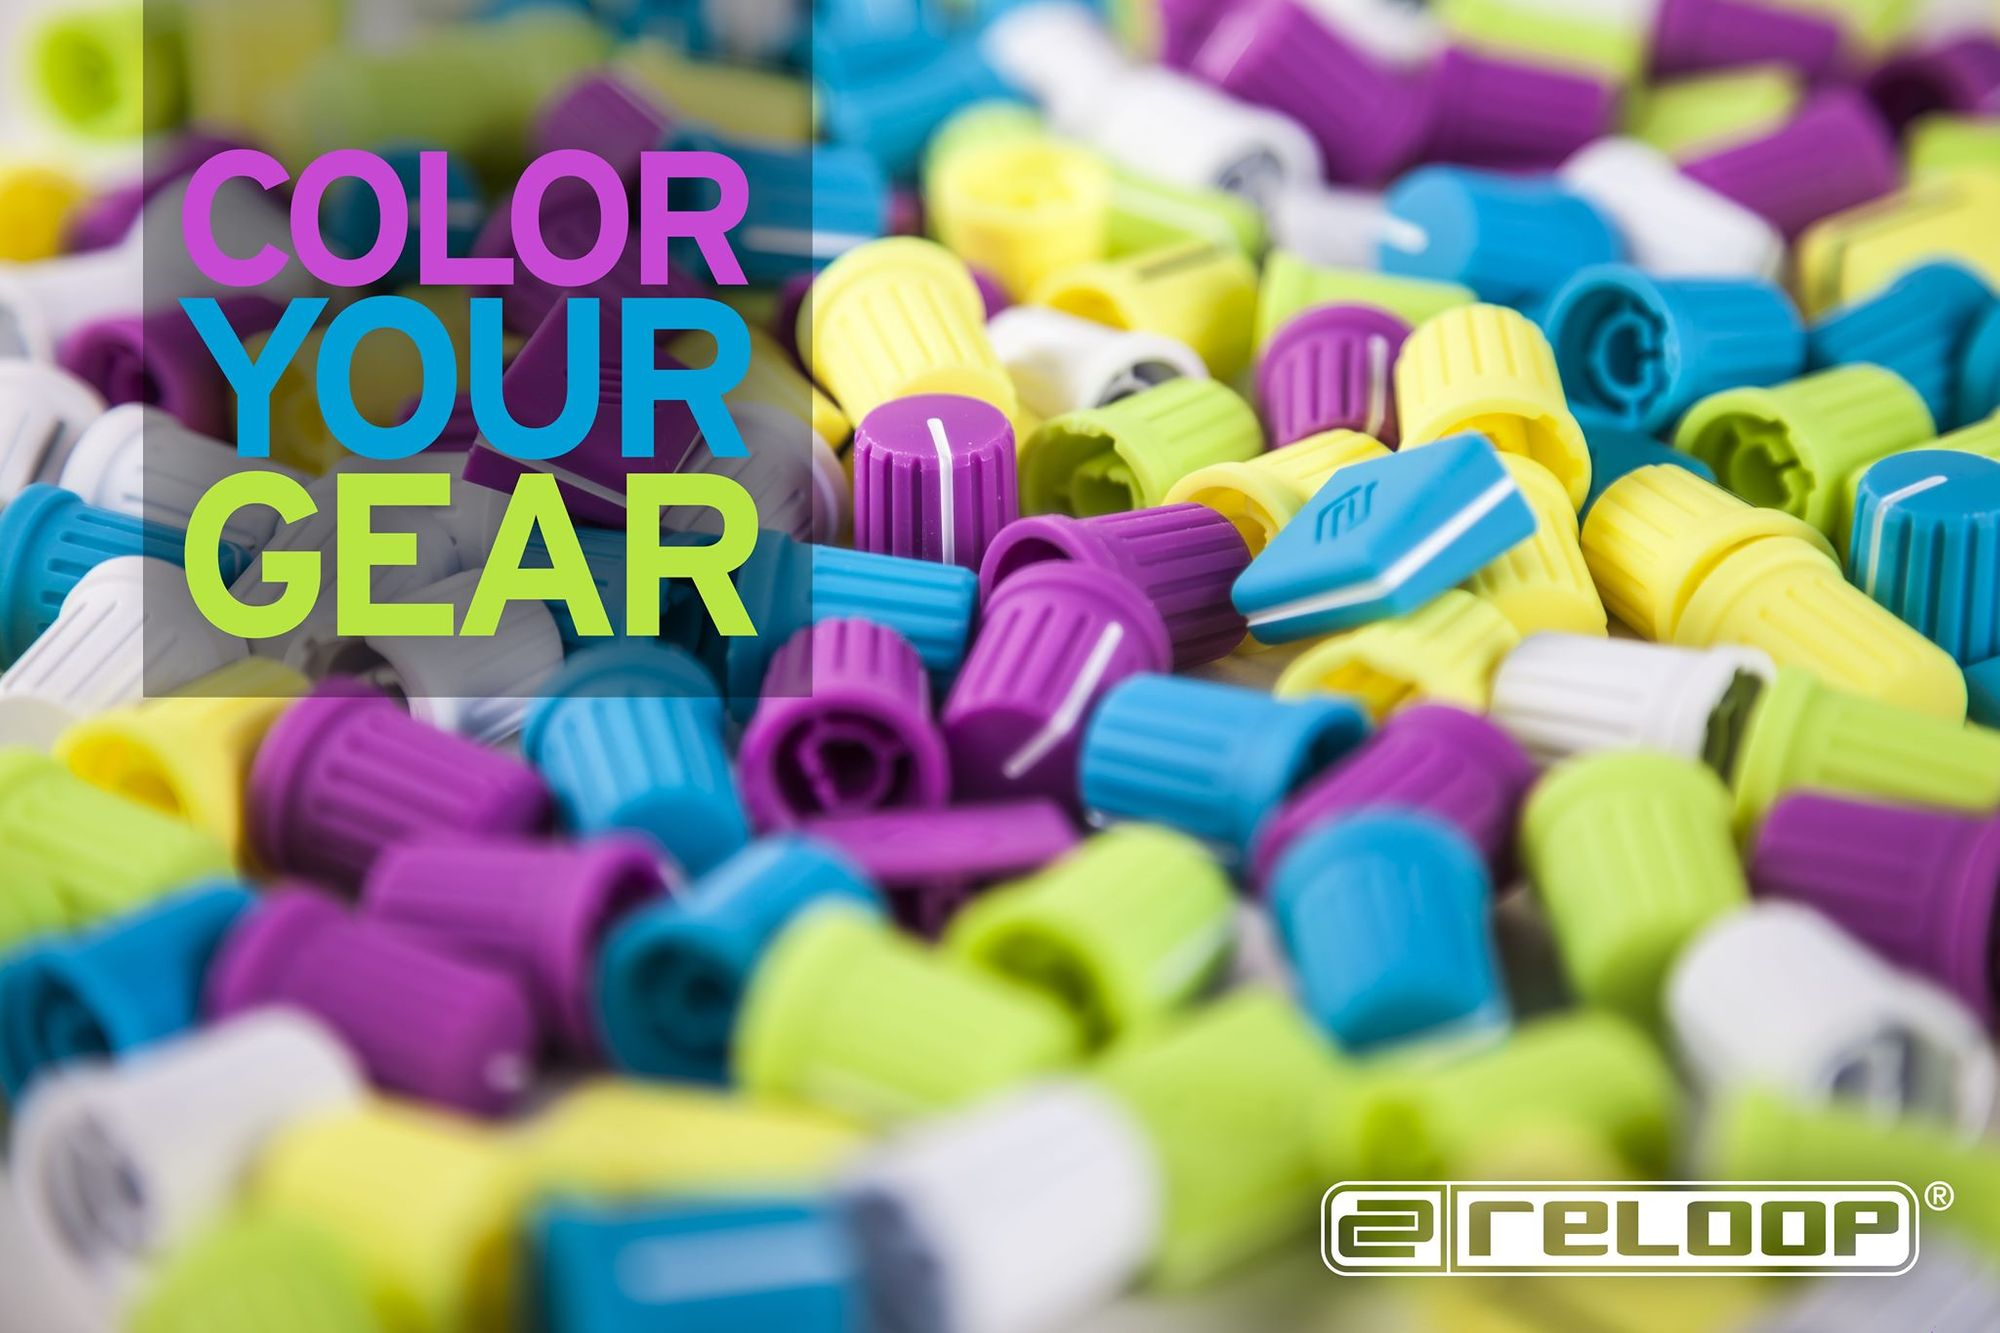 Color your gear!